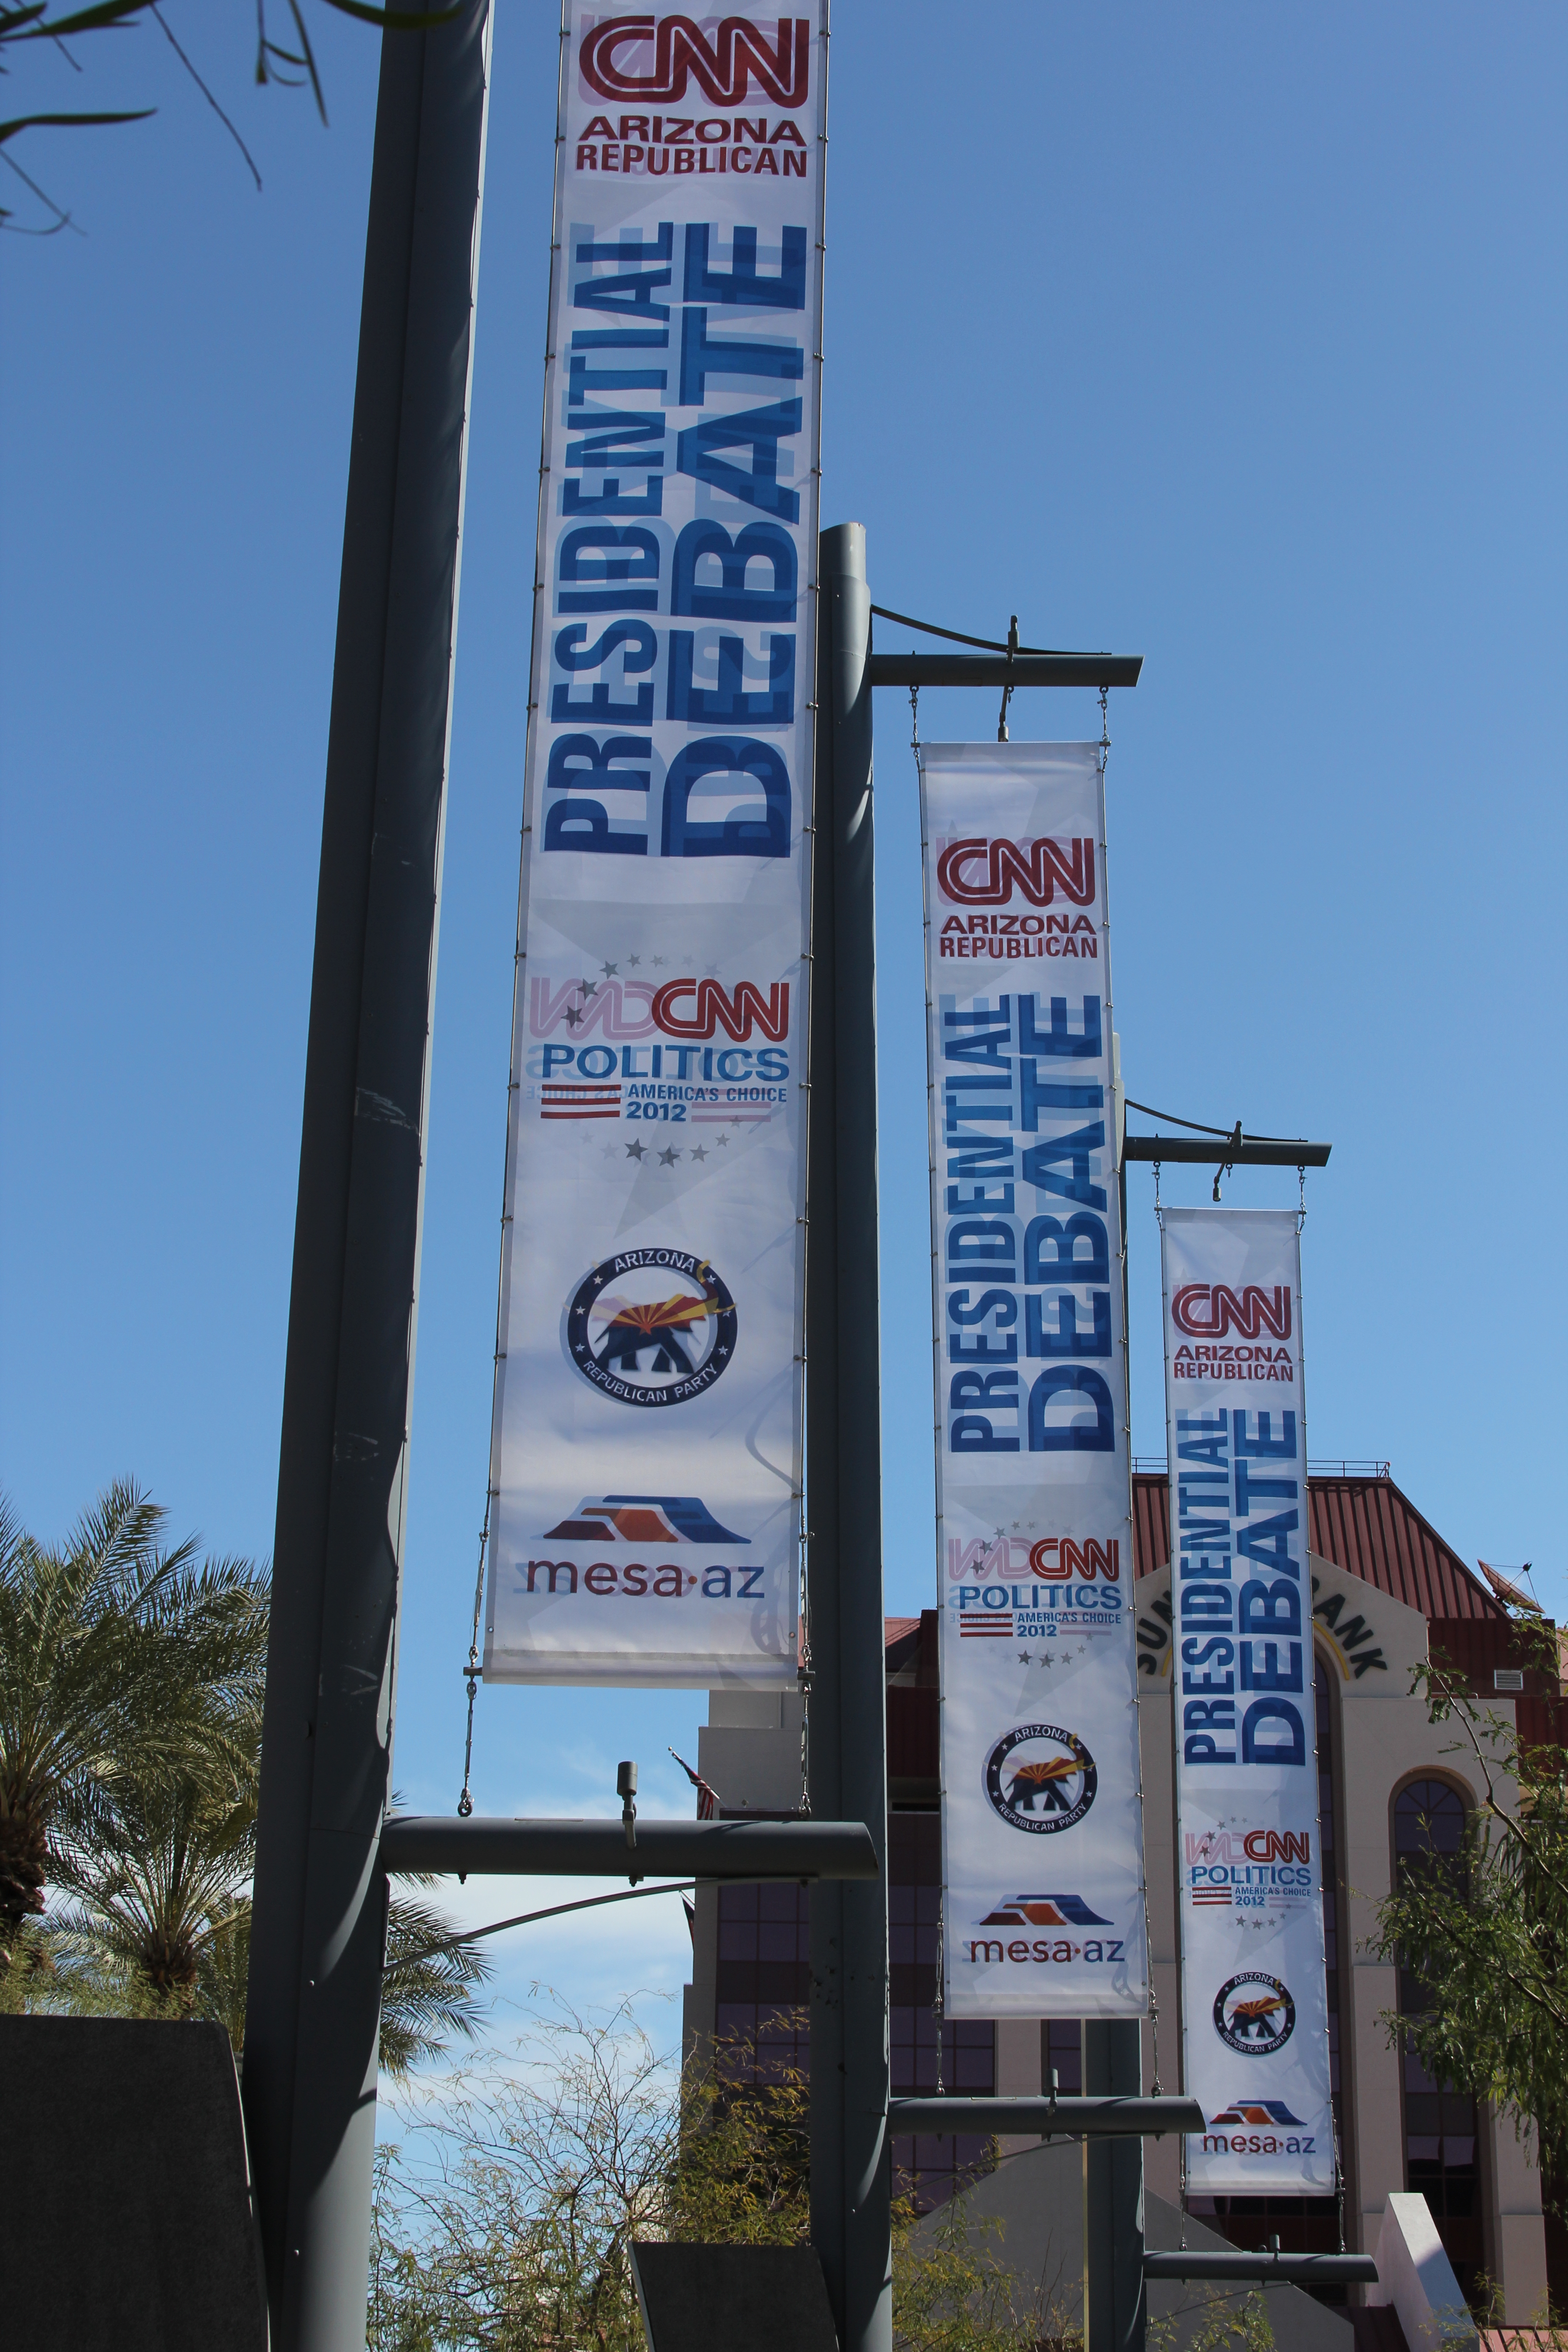 CNN Arizona Debate